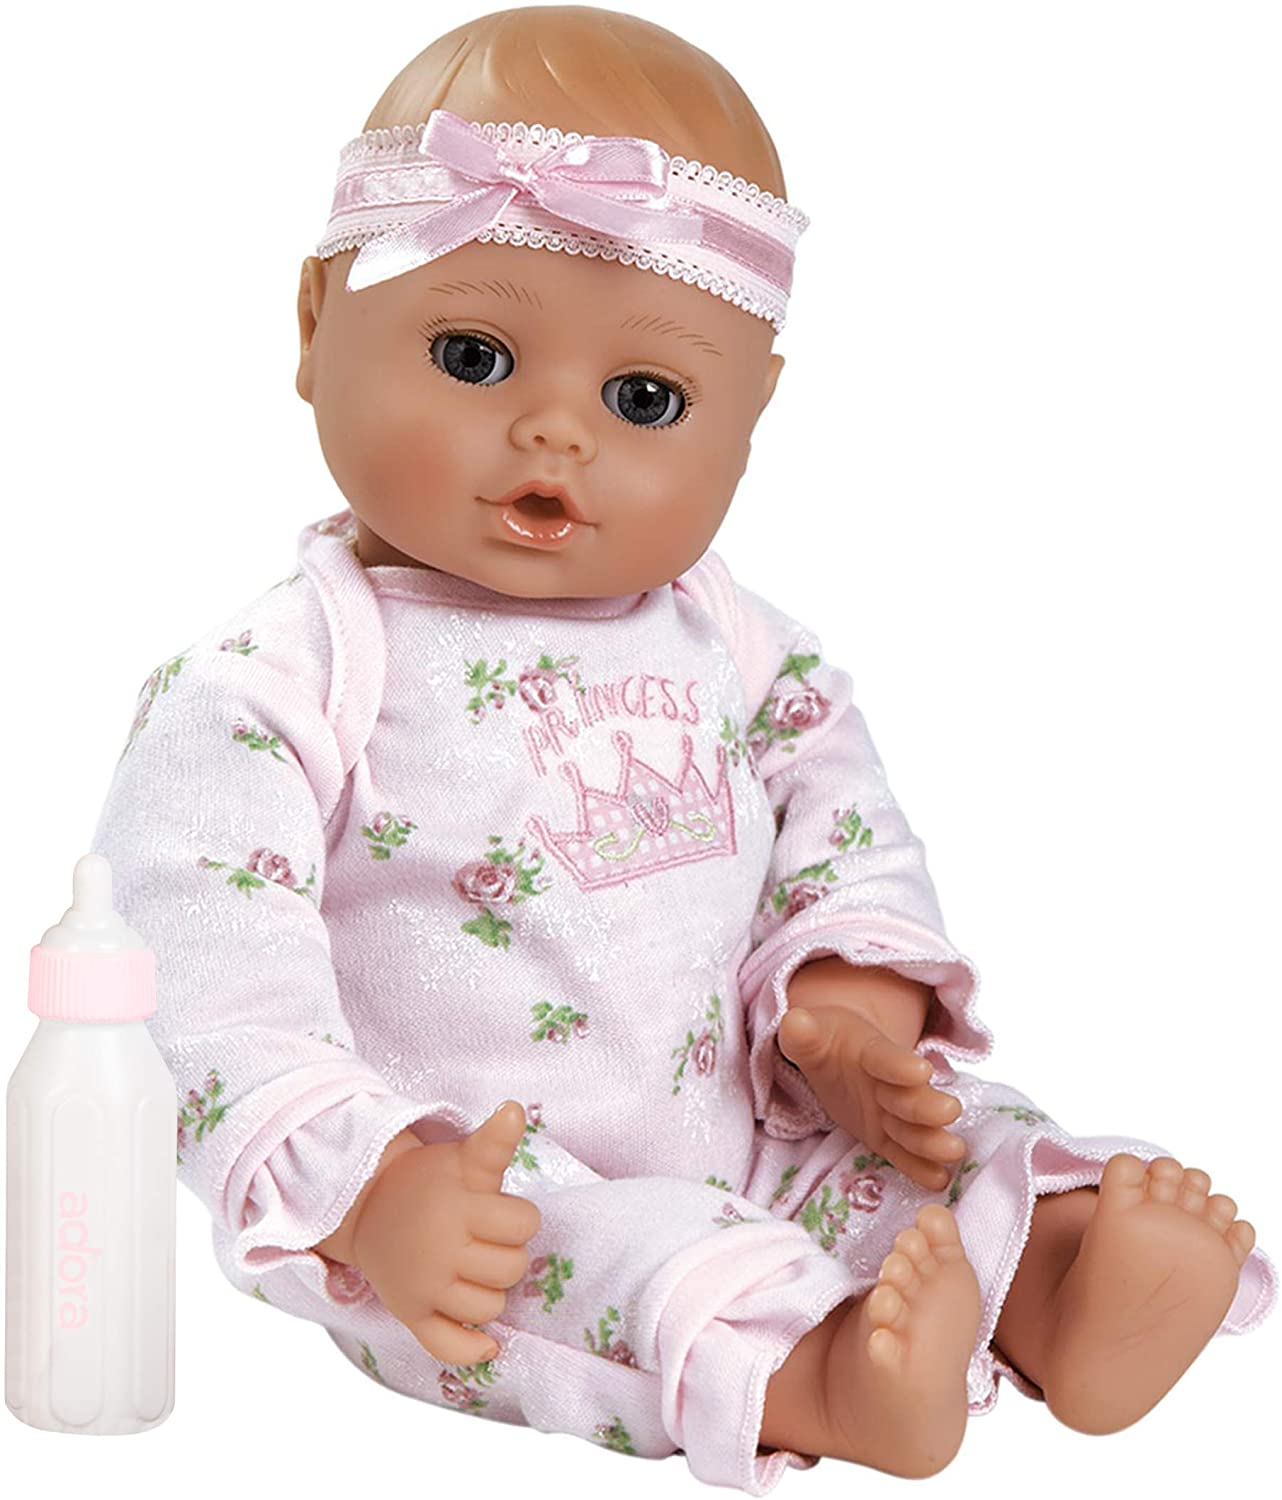 Adora Open & Close Eyes Baby Doll, 13-Inch